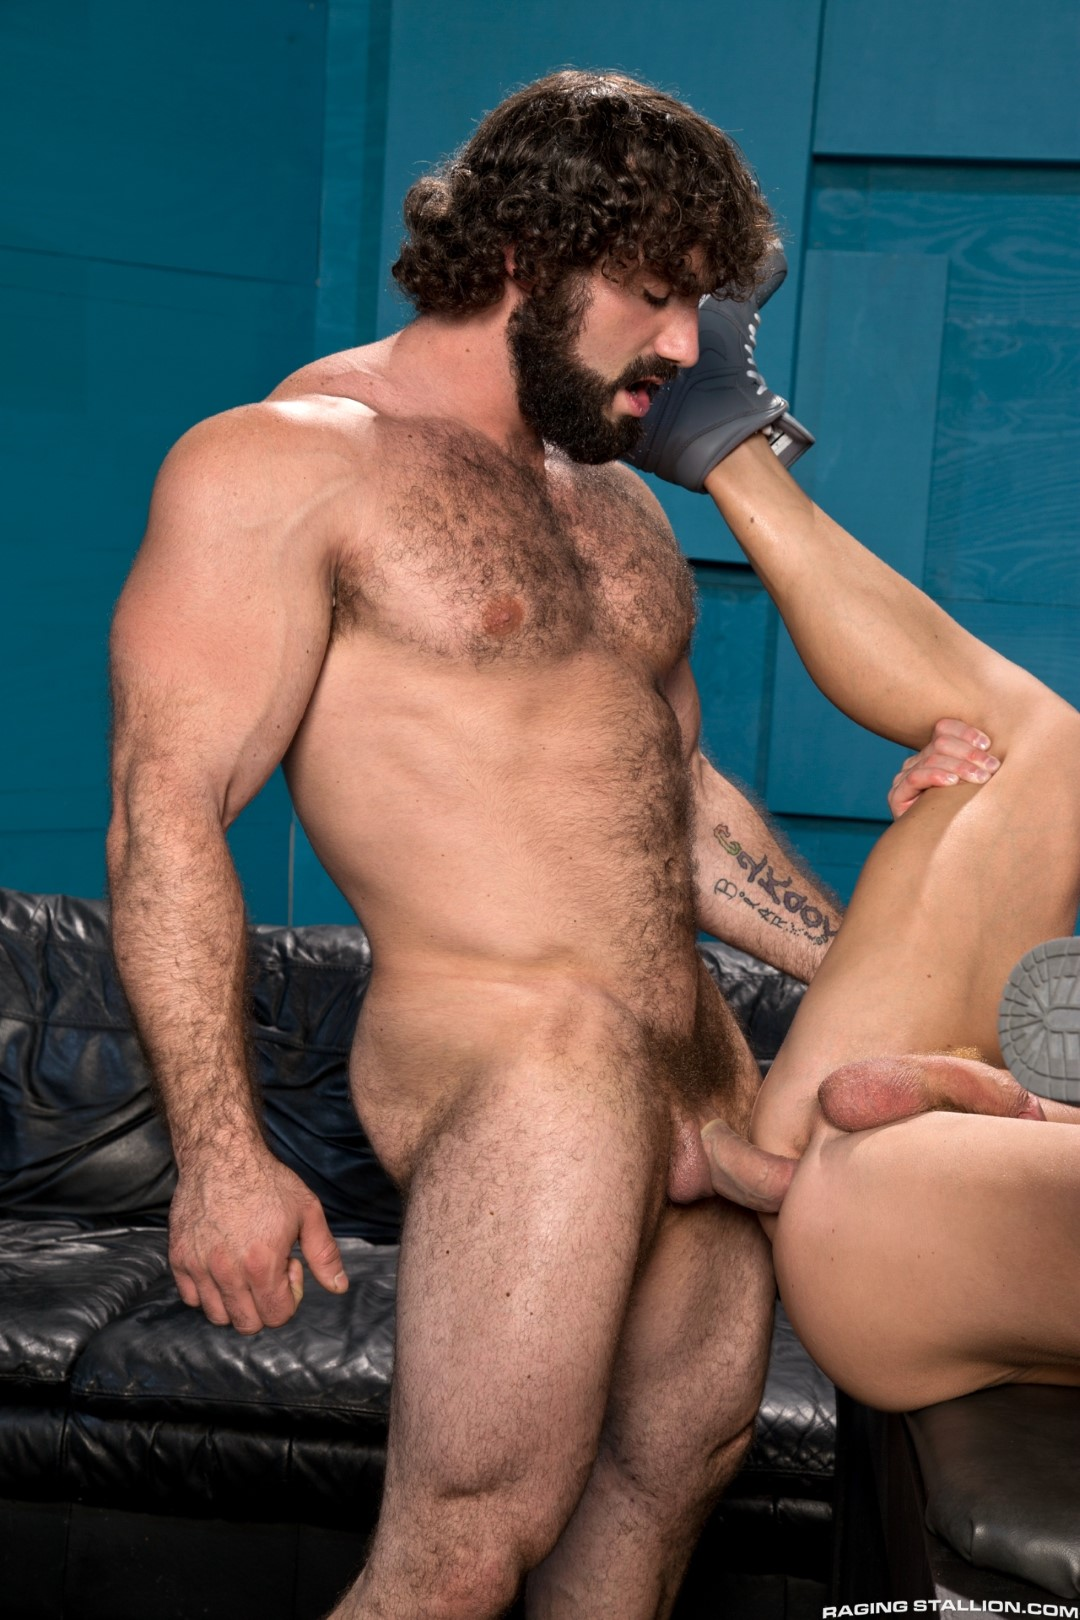 Raging-Stallion-Johnny-V-and-Jaxton-Wheeler-Hairy-Muscle-Hunk-Fucking-Amateur-Gay-Porn-12 Hairy Muscle Hunk Jaxton Wheeler Fucking A Muscle Jock